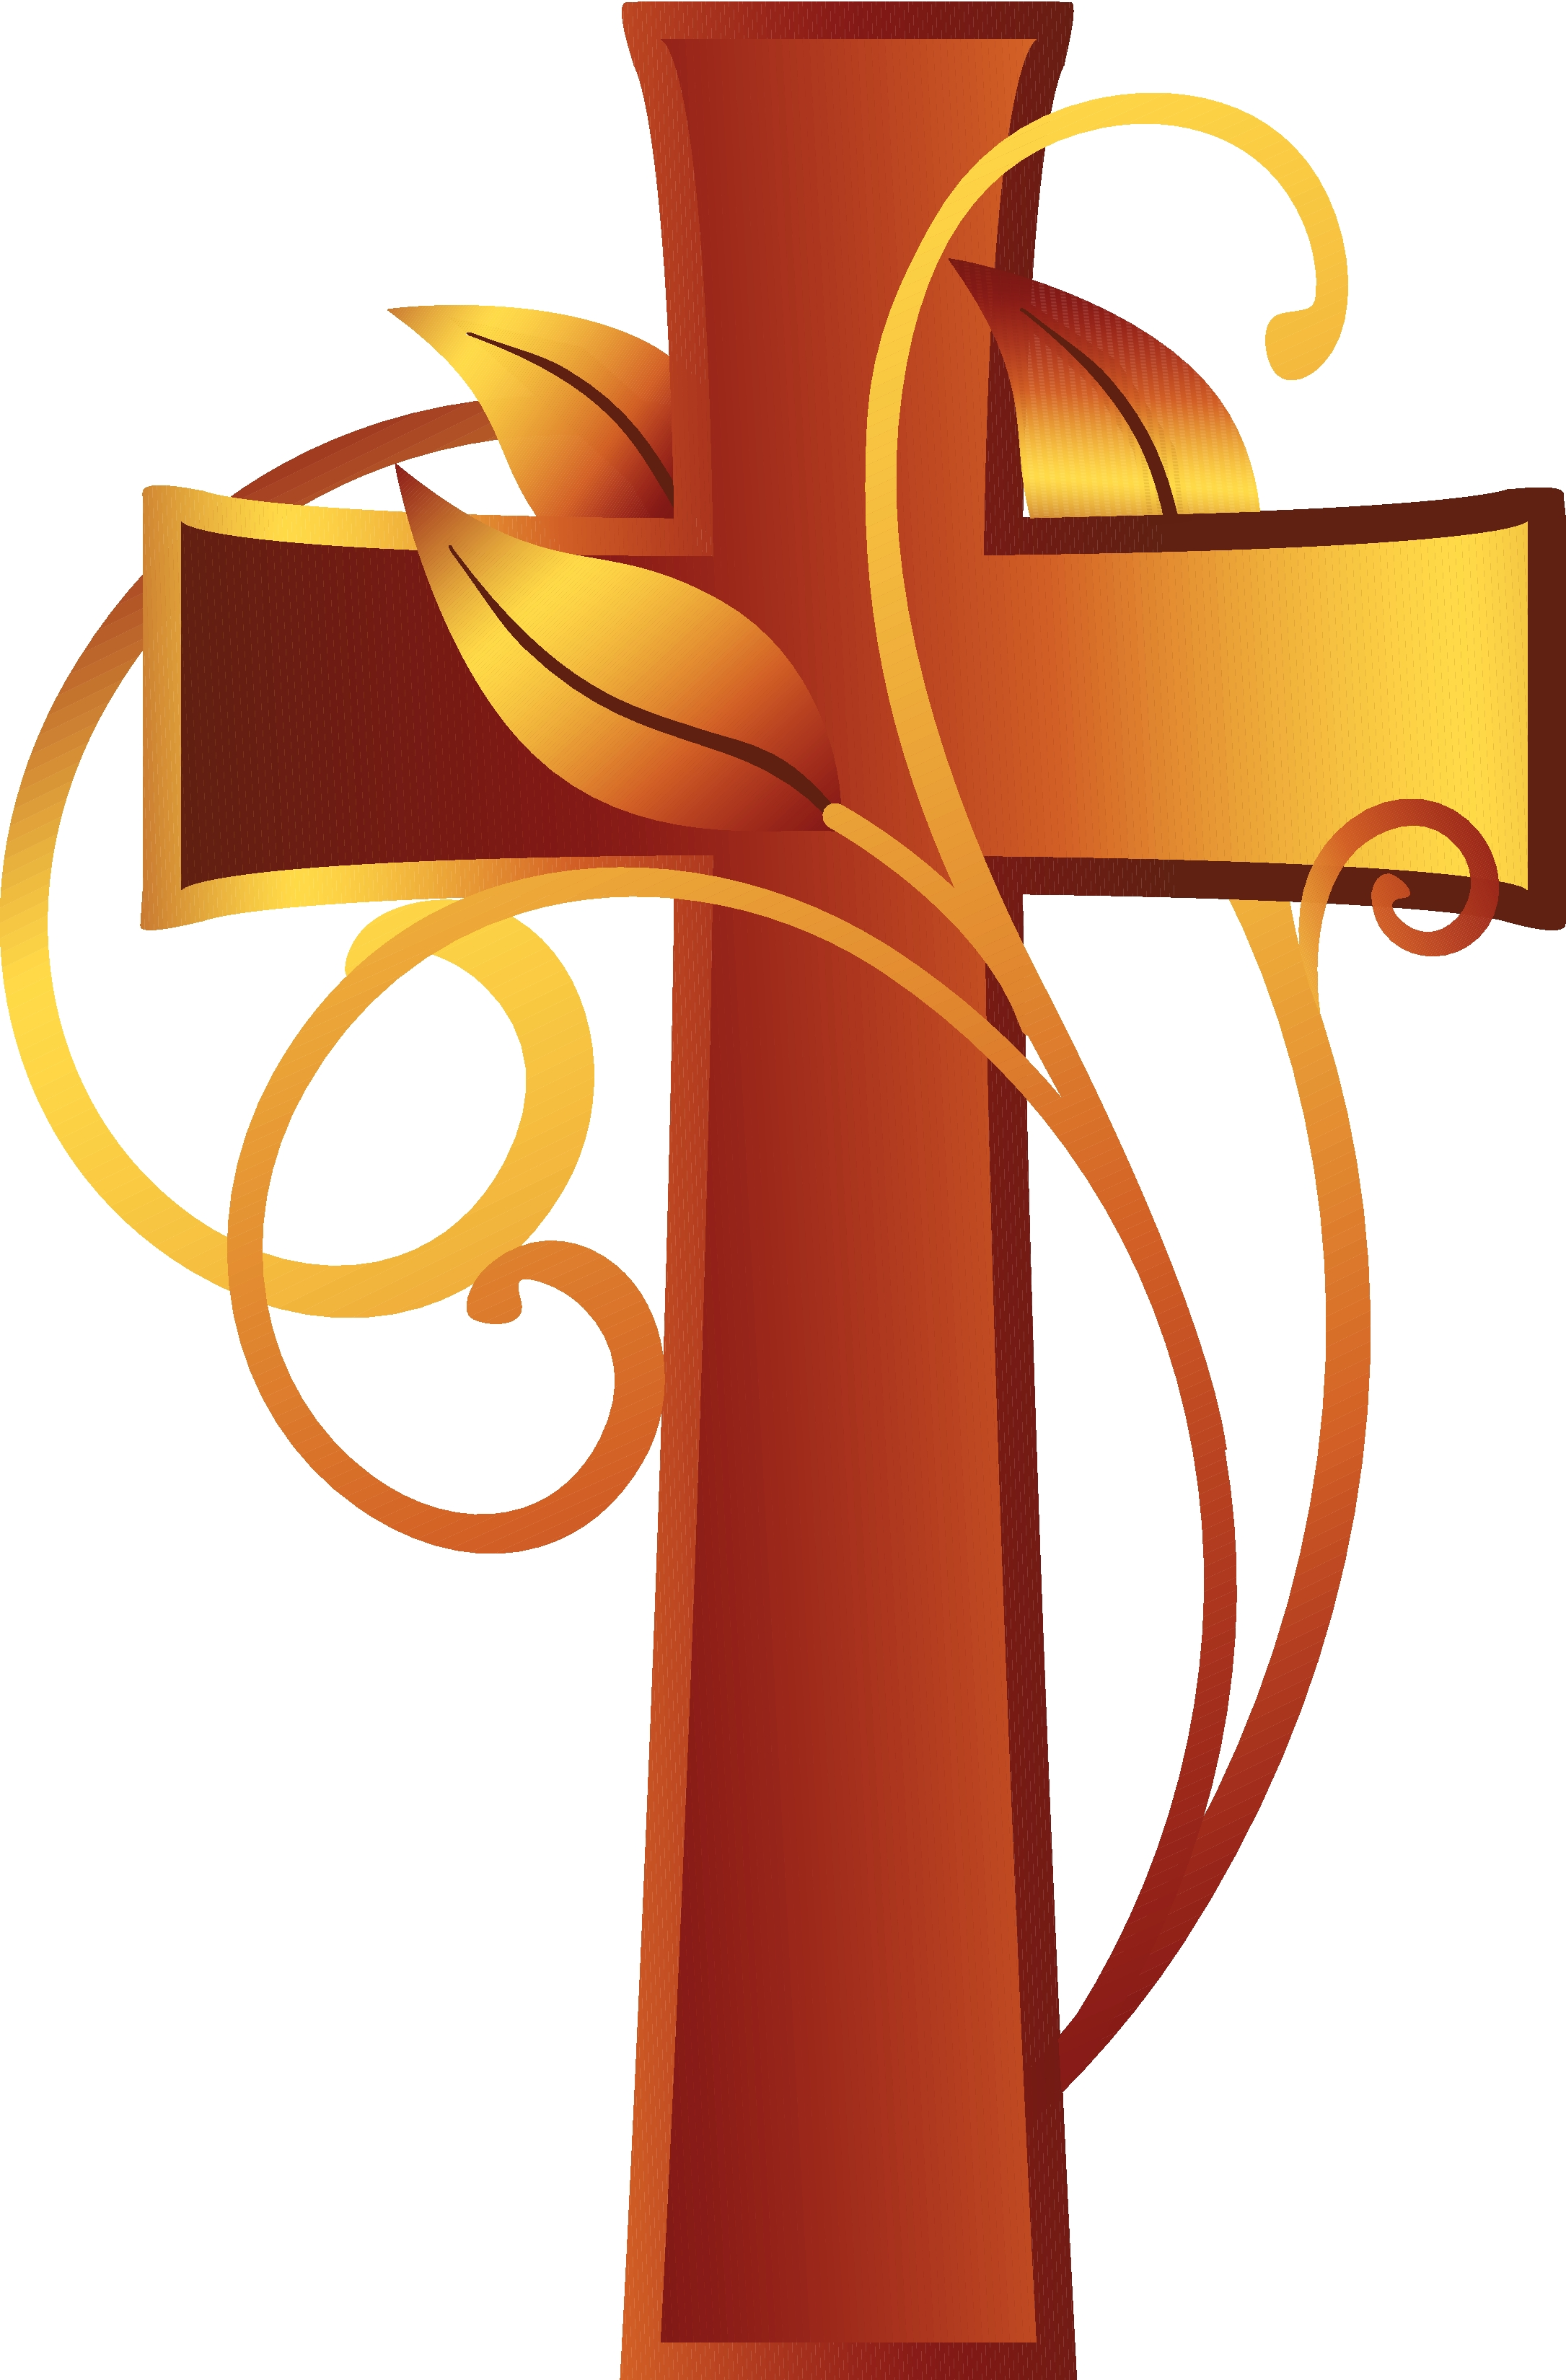 Christian cross clipart cross graphics cross images